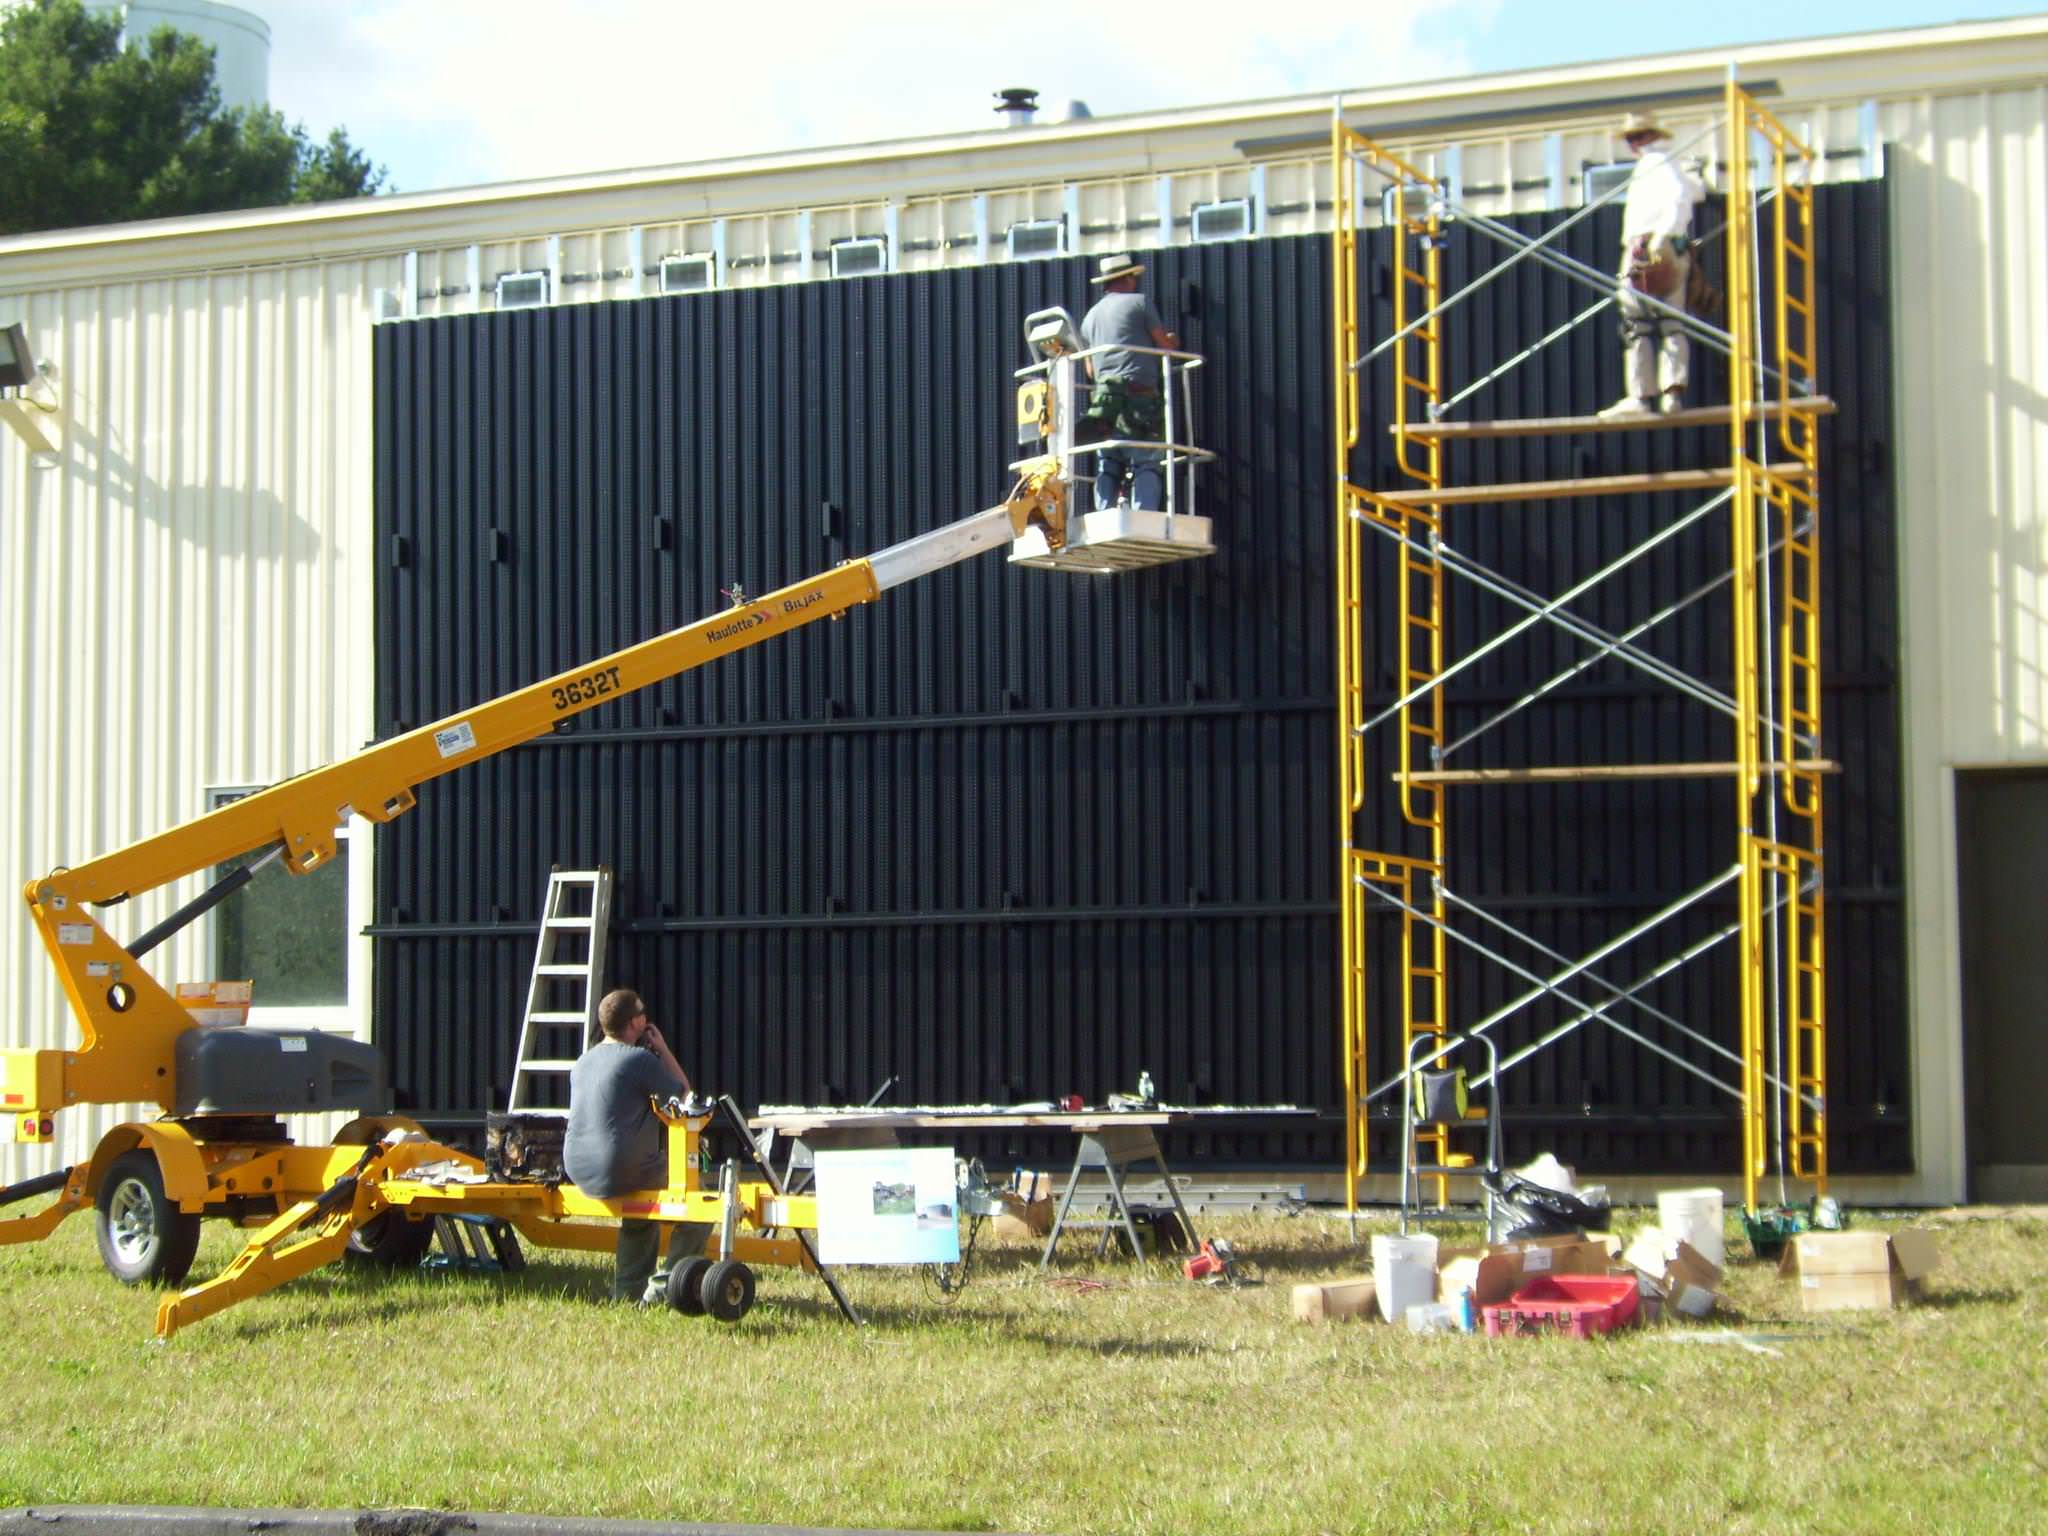 The installation of a solar wall at Wicked Joe's roastery in Maine.